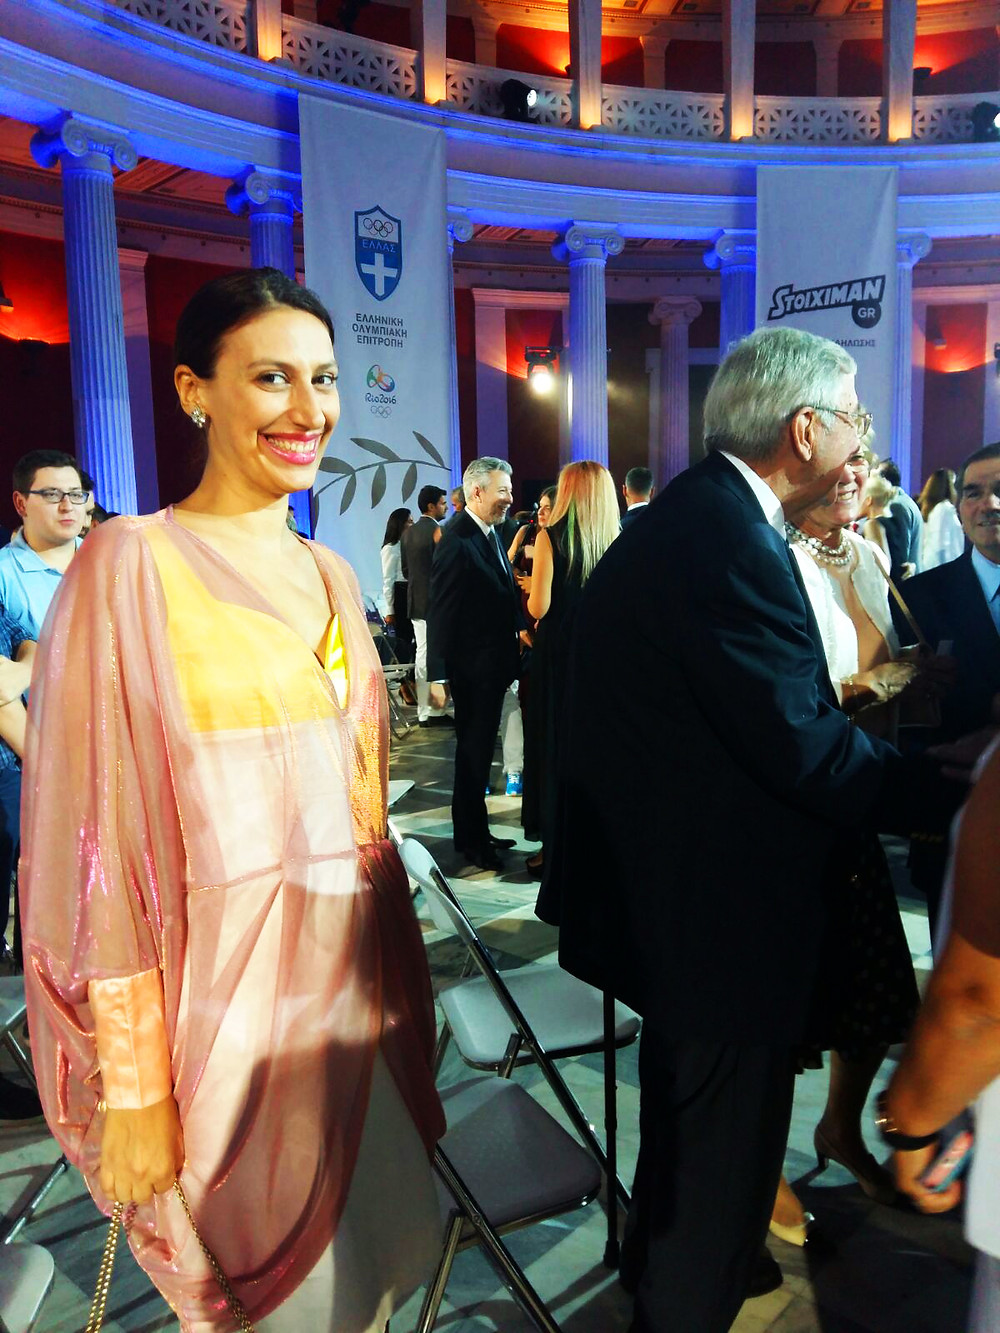 The former King of Greece and Eleni Kyriacou